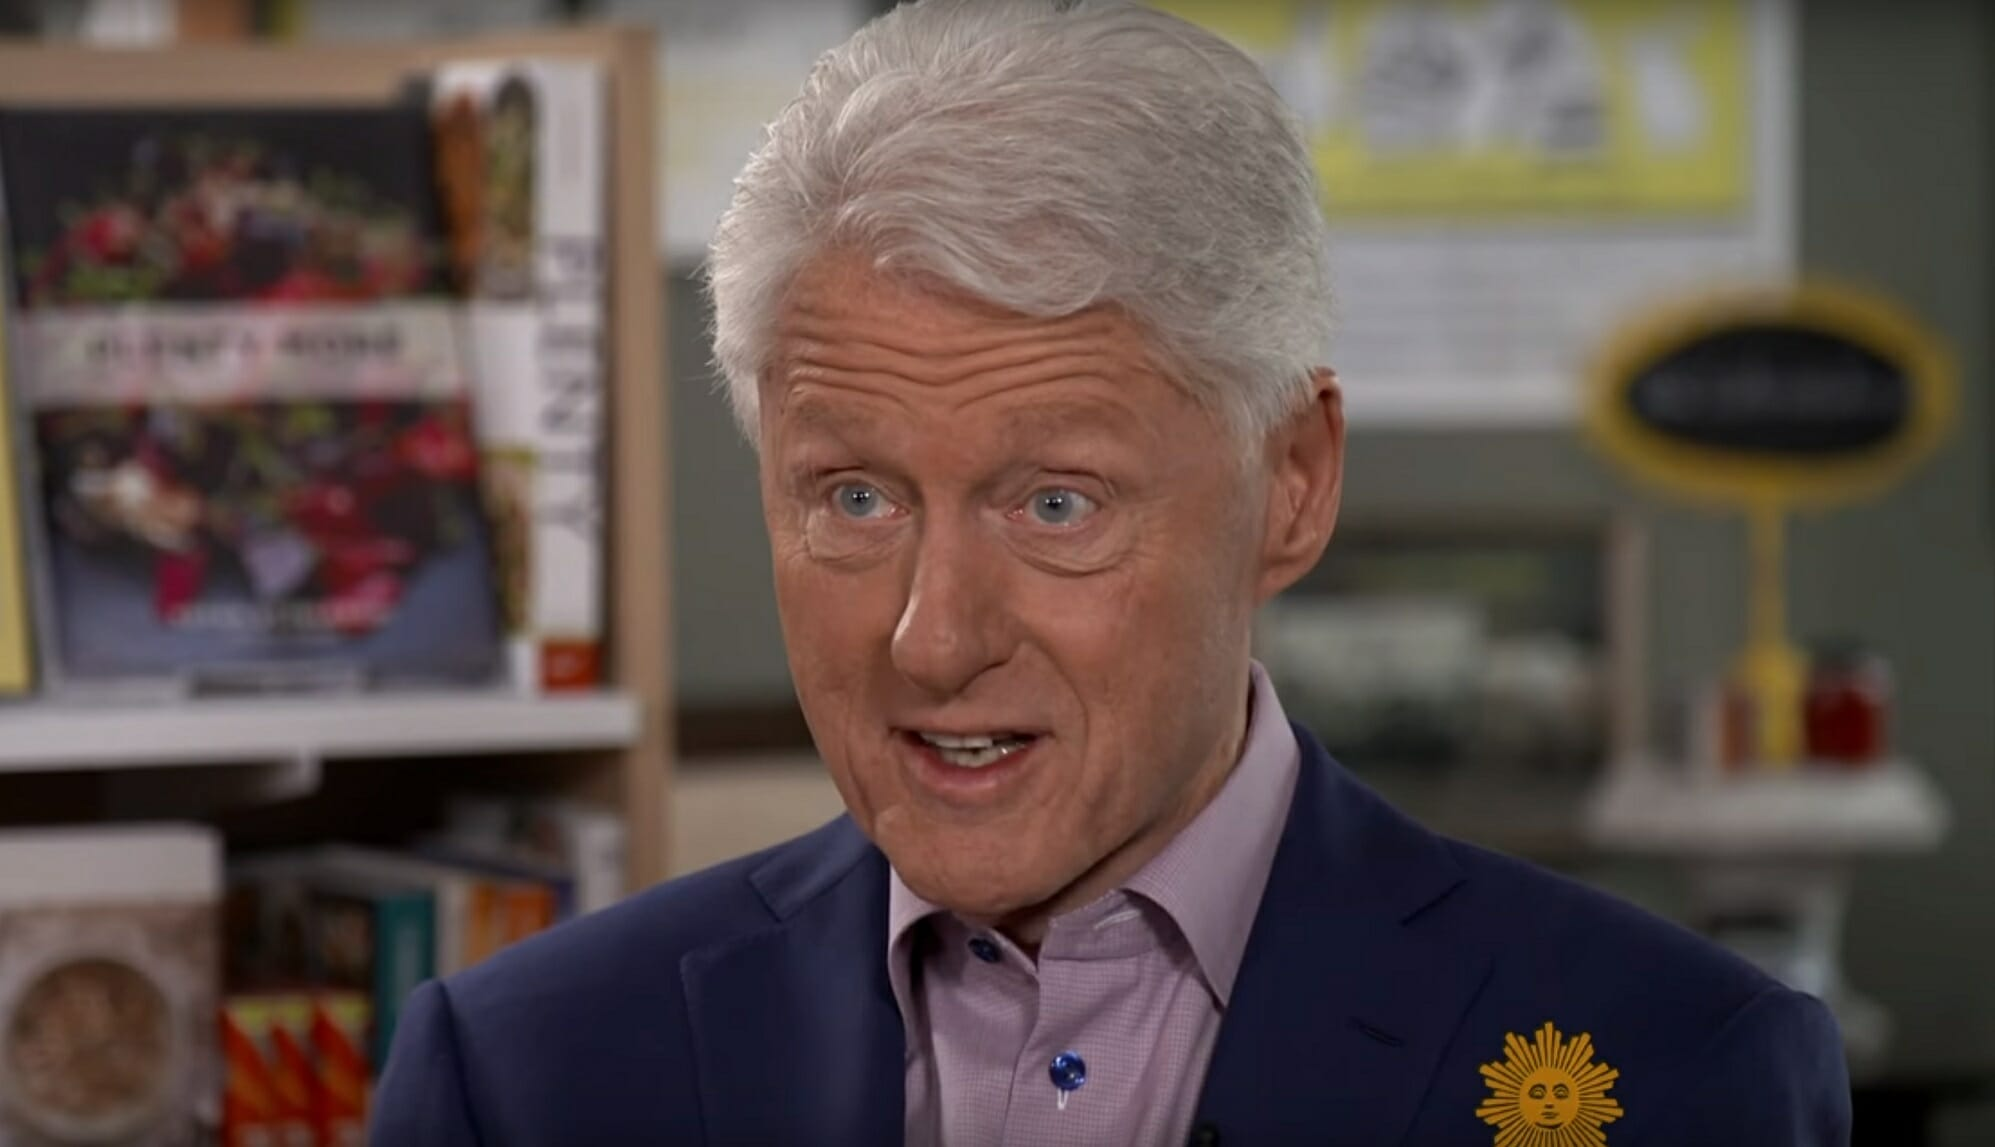 BREAKING: Bill Clinton Hospitalized with an Infection